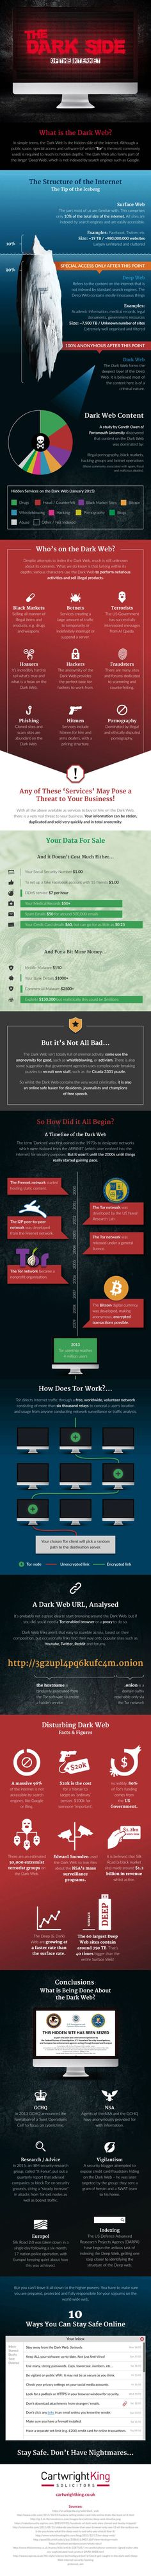 kolyakad83 on pinterest there are many unusual things you can find on the dark web the dark web is the restricted portion of the deep web that you can only access with an ccuart Choice Image